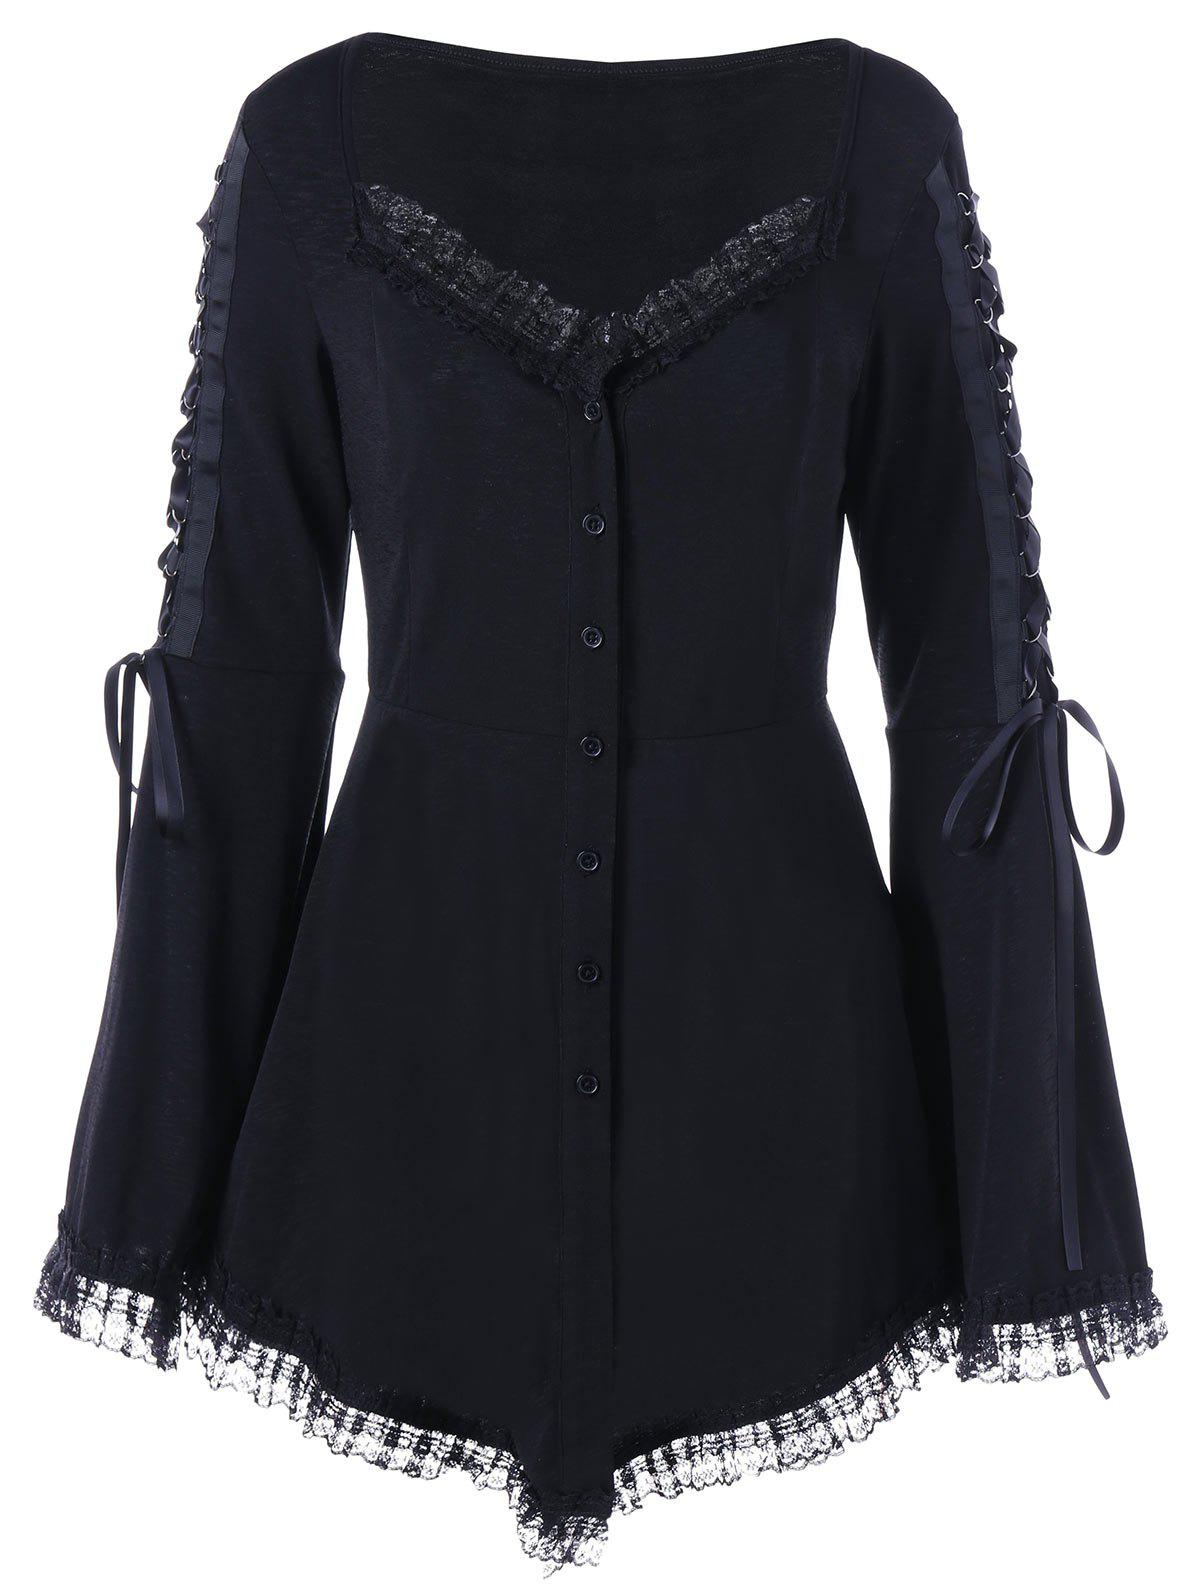 Lace Up Flare Sleeve Gothic Top - BLACK 2XL